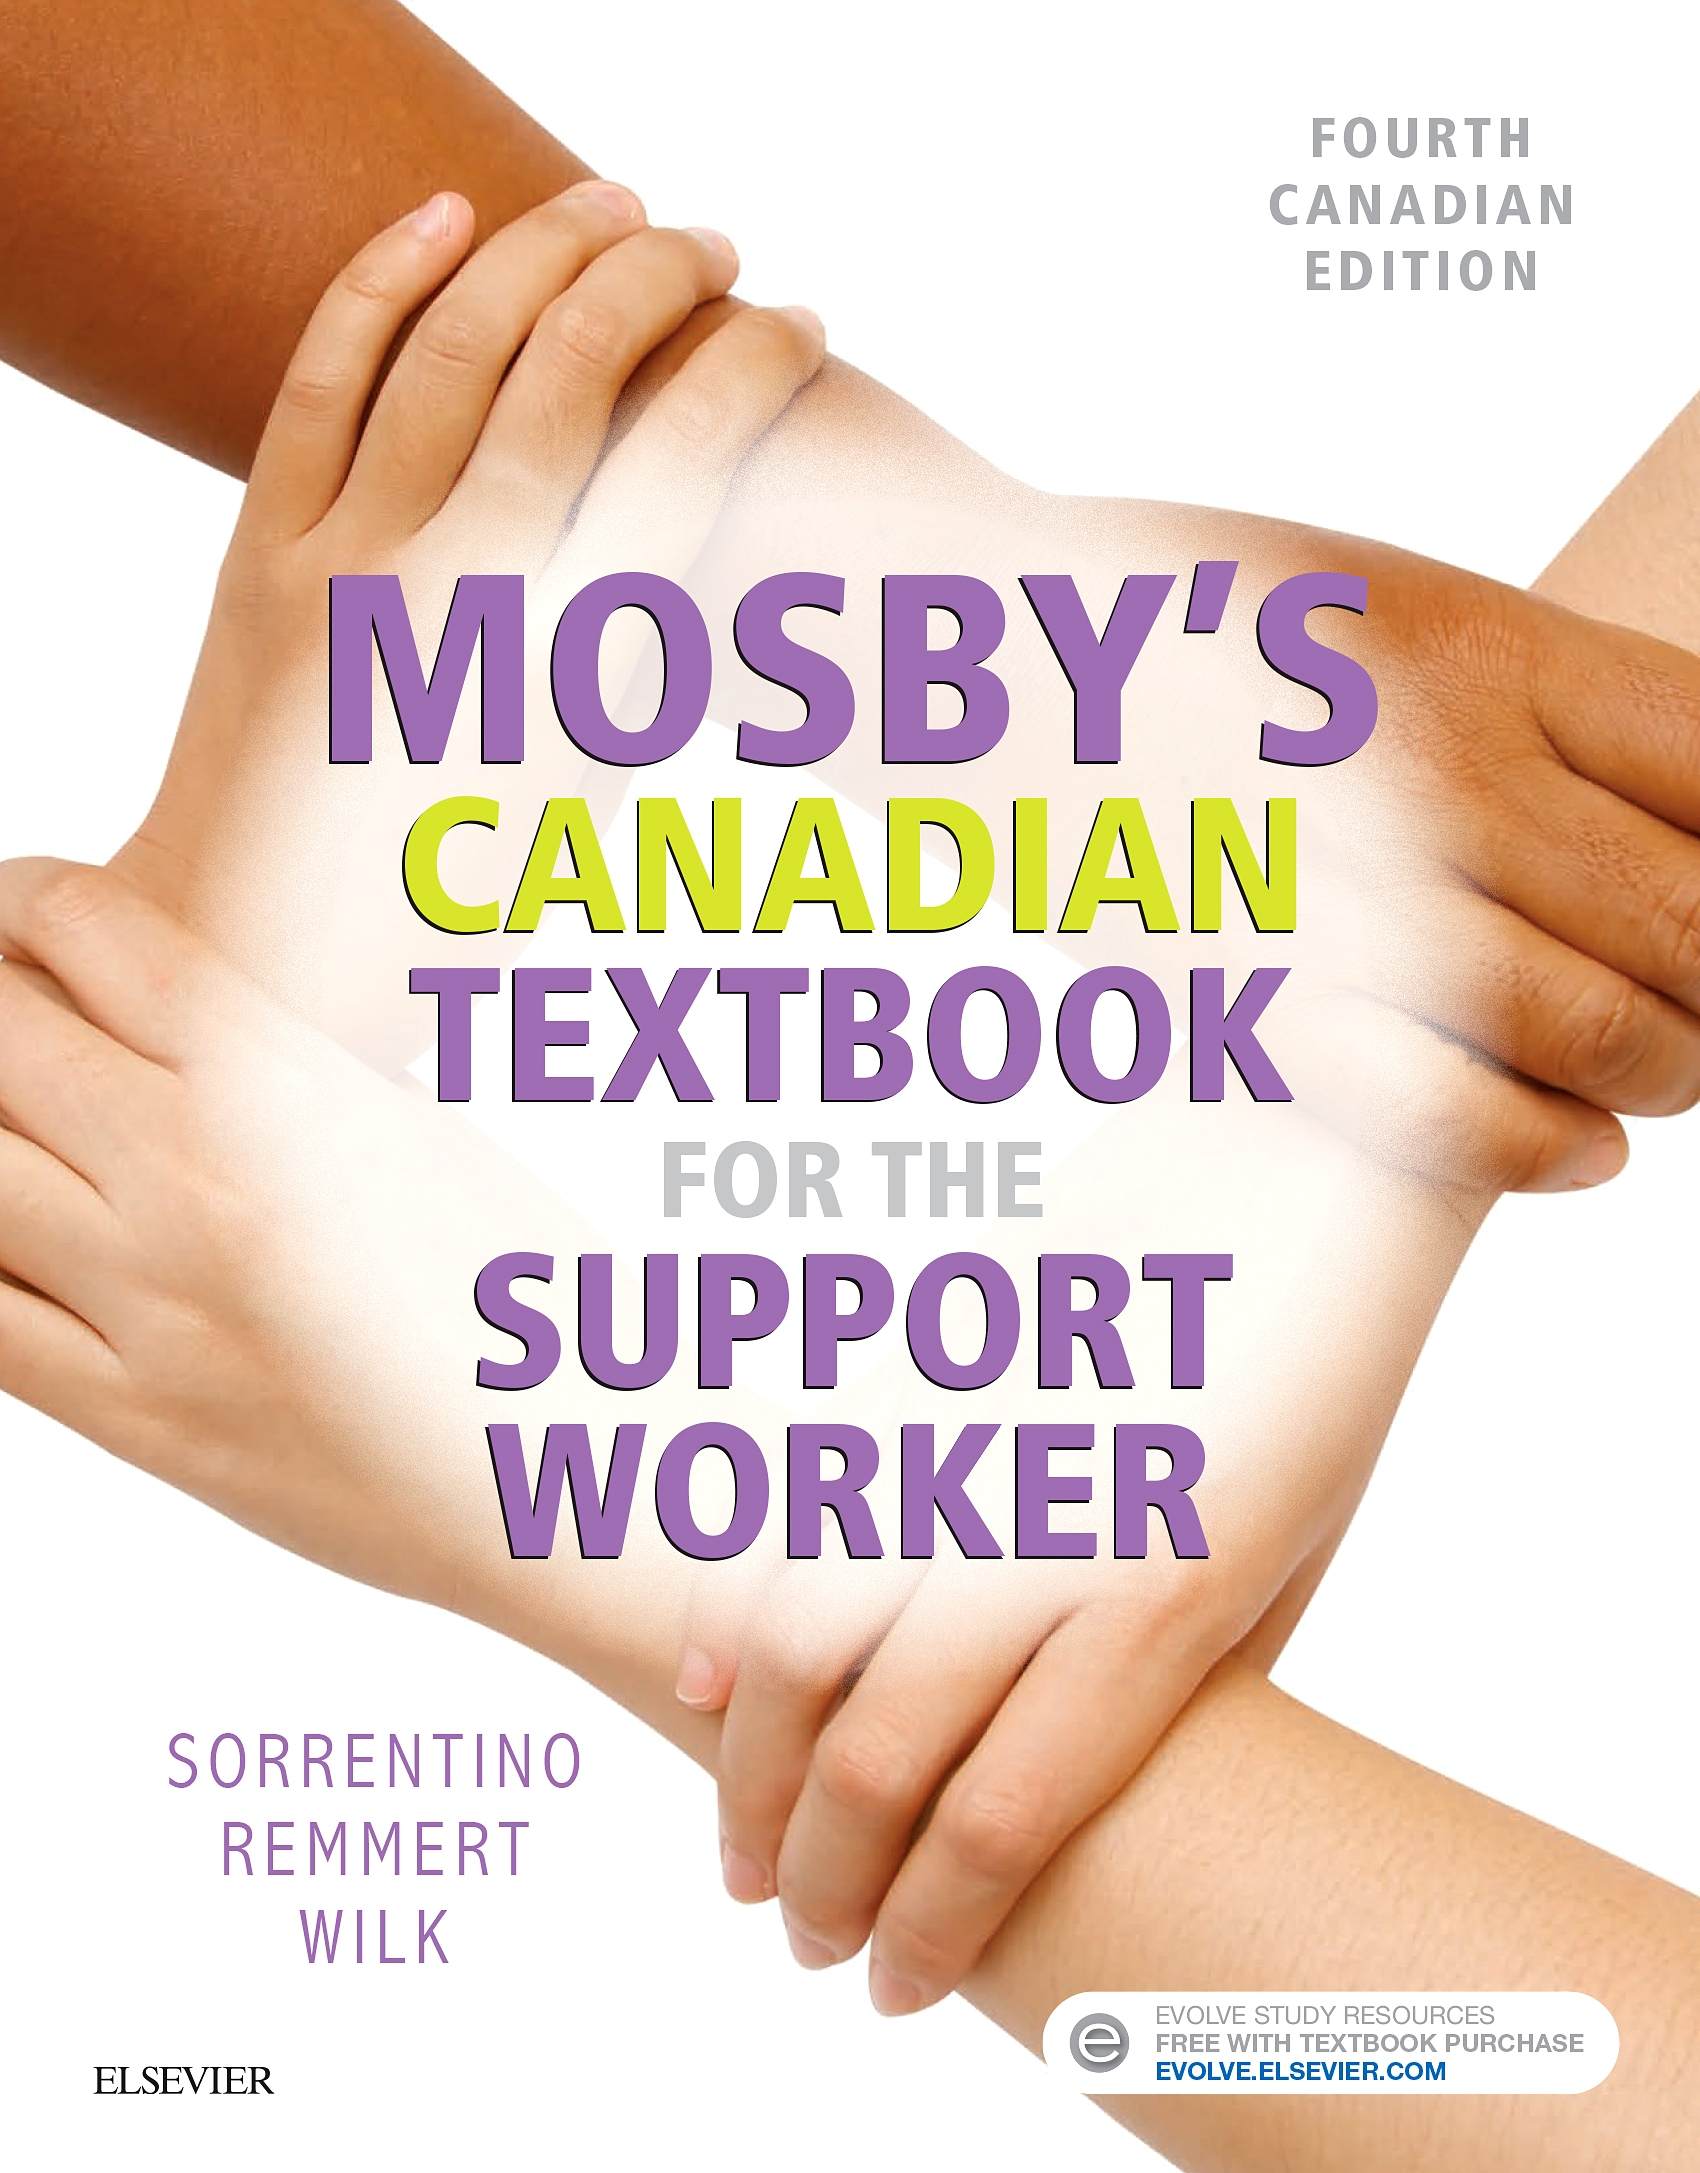 Evolve Resources for Mosby's Canadian Textbook for the Support Worker, 4th Edition